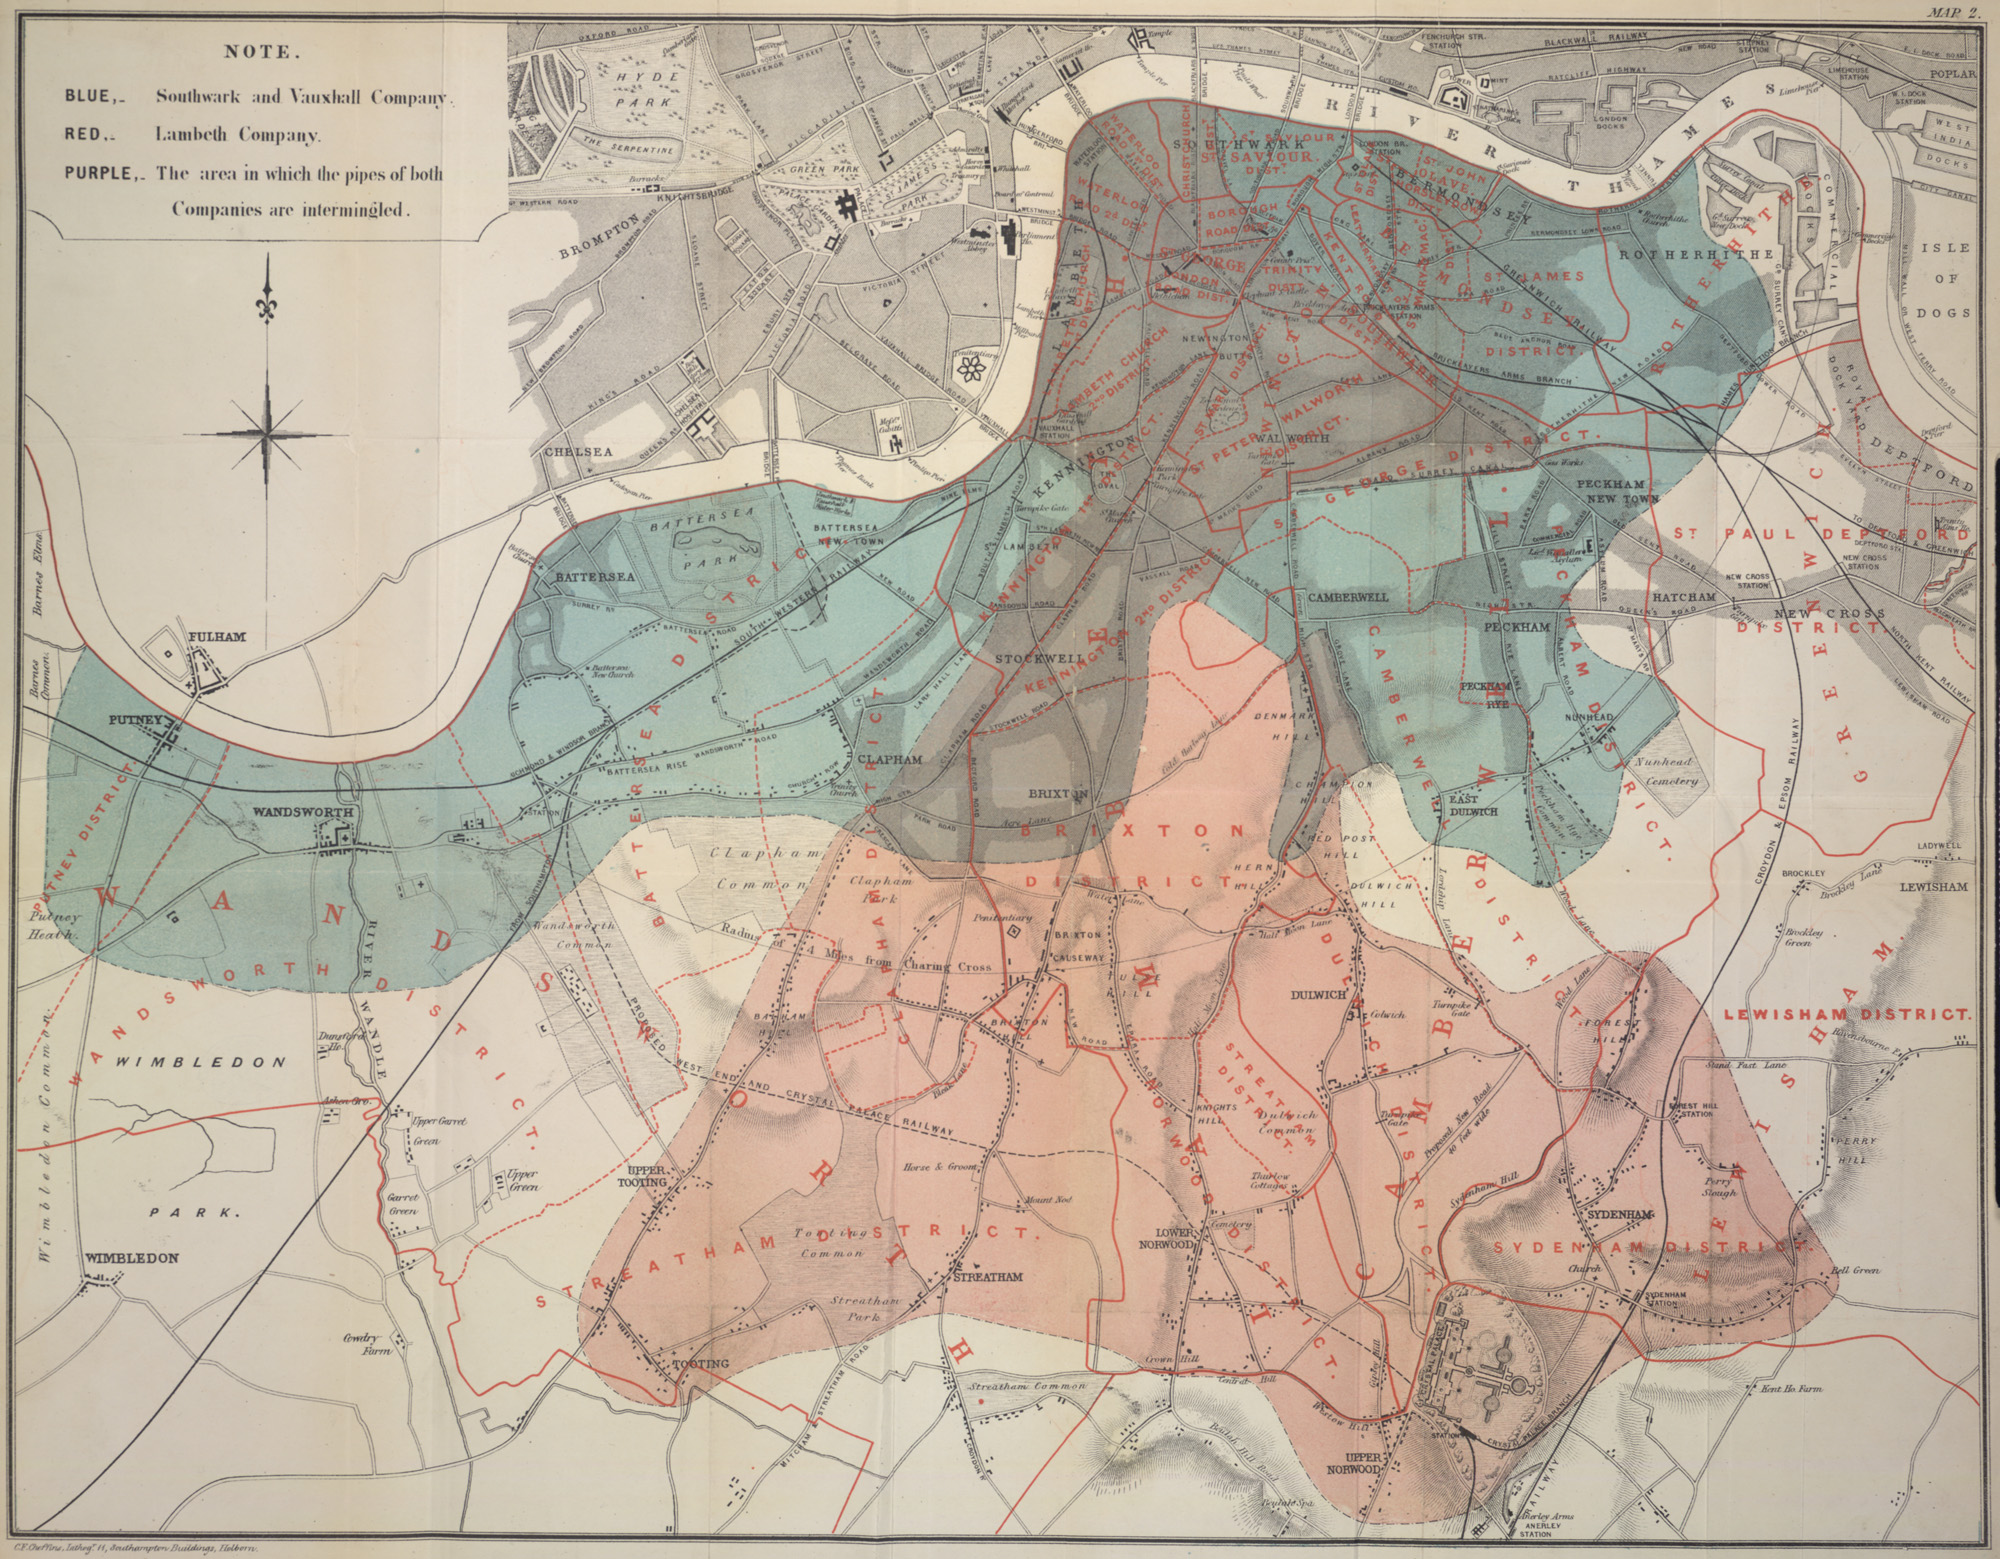 : Map showing the areas served by the Southwark & Vauxhall Water Company and the Lambeth Water Company